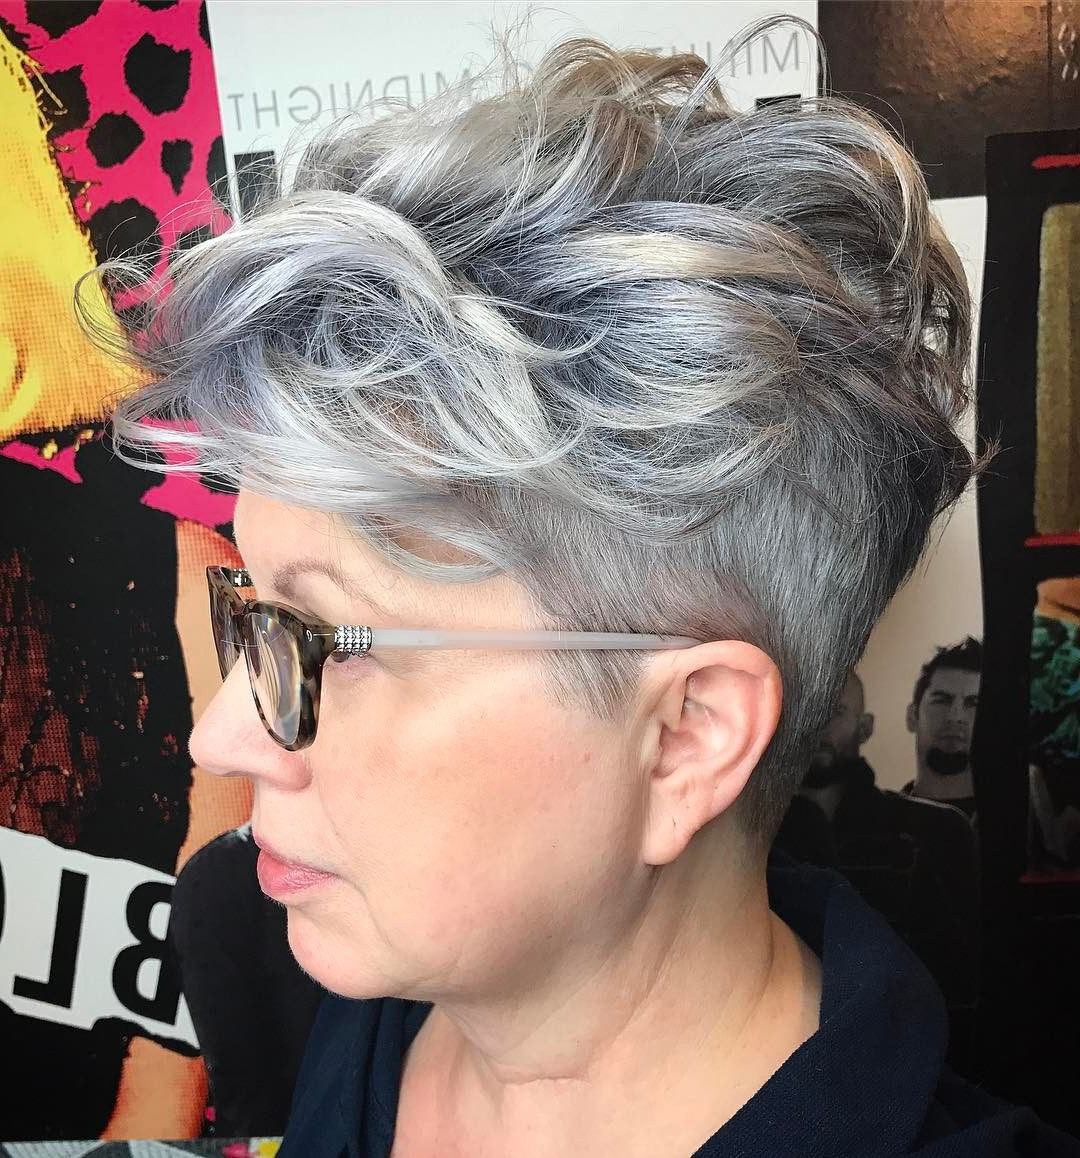 90 Classy And Simple Short Hairstyles For Women Over 50 In 2018 Inside Pixie Undercut Hairstyles For Women Over 50 (Gallery 1 of 20)